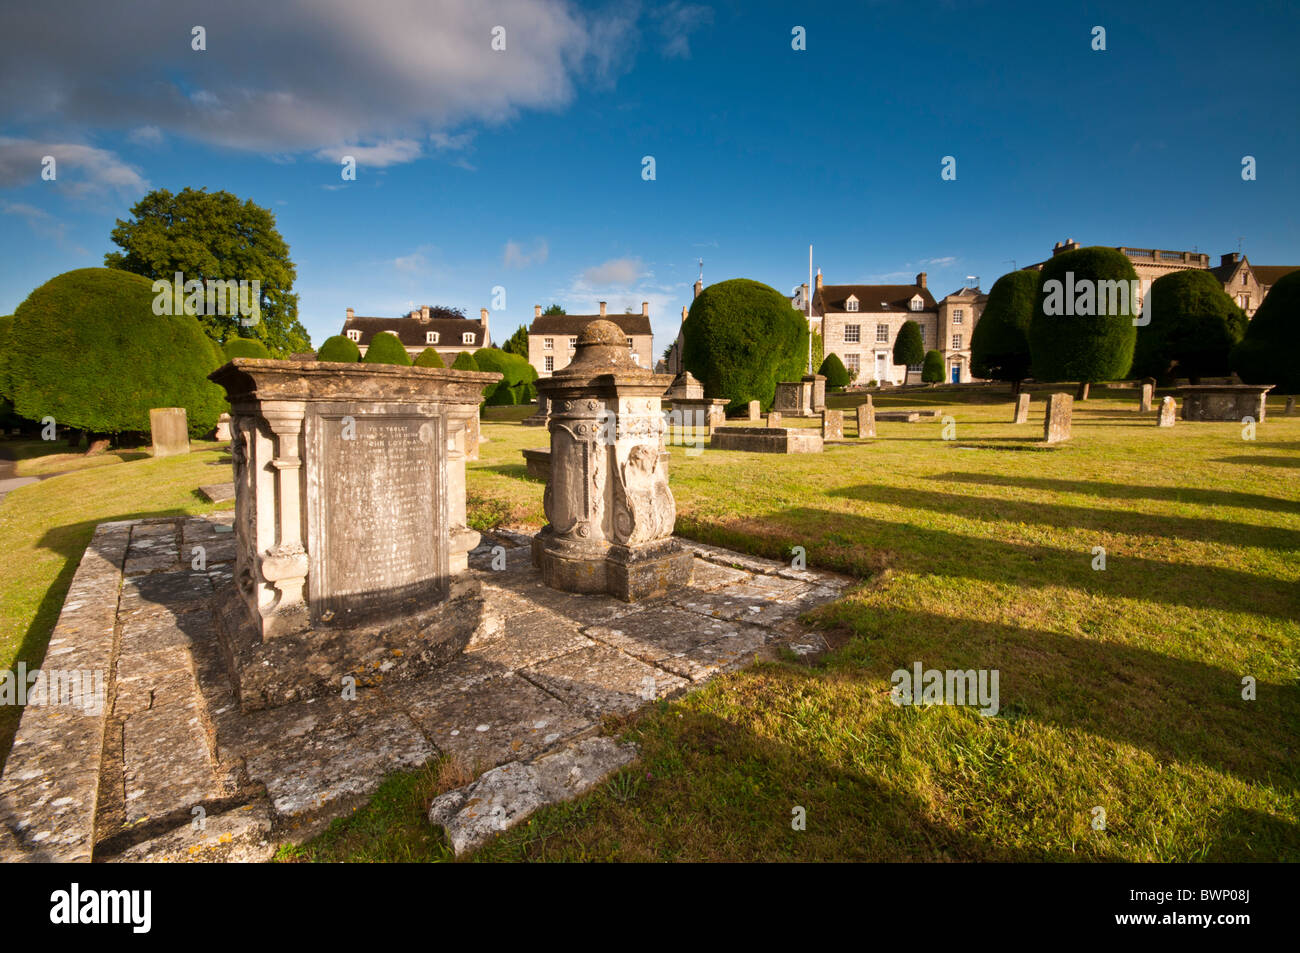 St Mary's Churchyard with yew trees and Cotswold stone cottages in the background, Painswick, Gloucestershire, - Stock Image